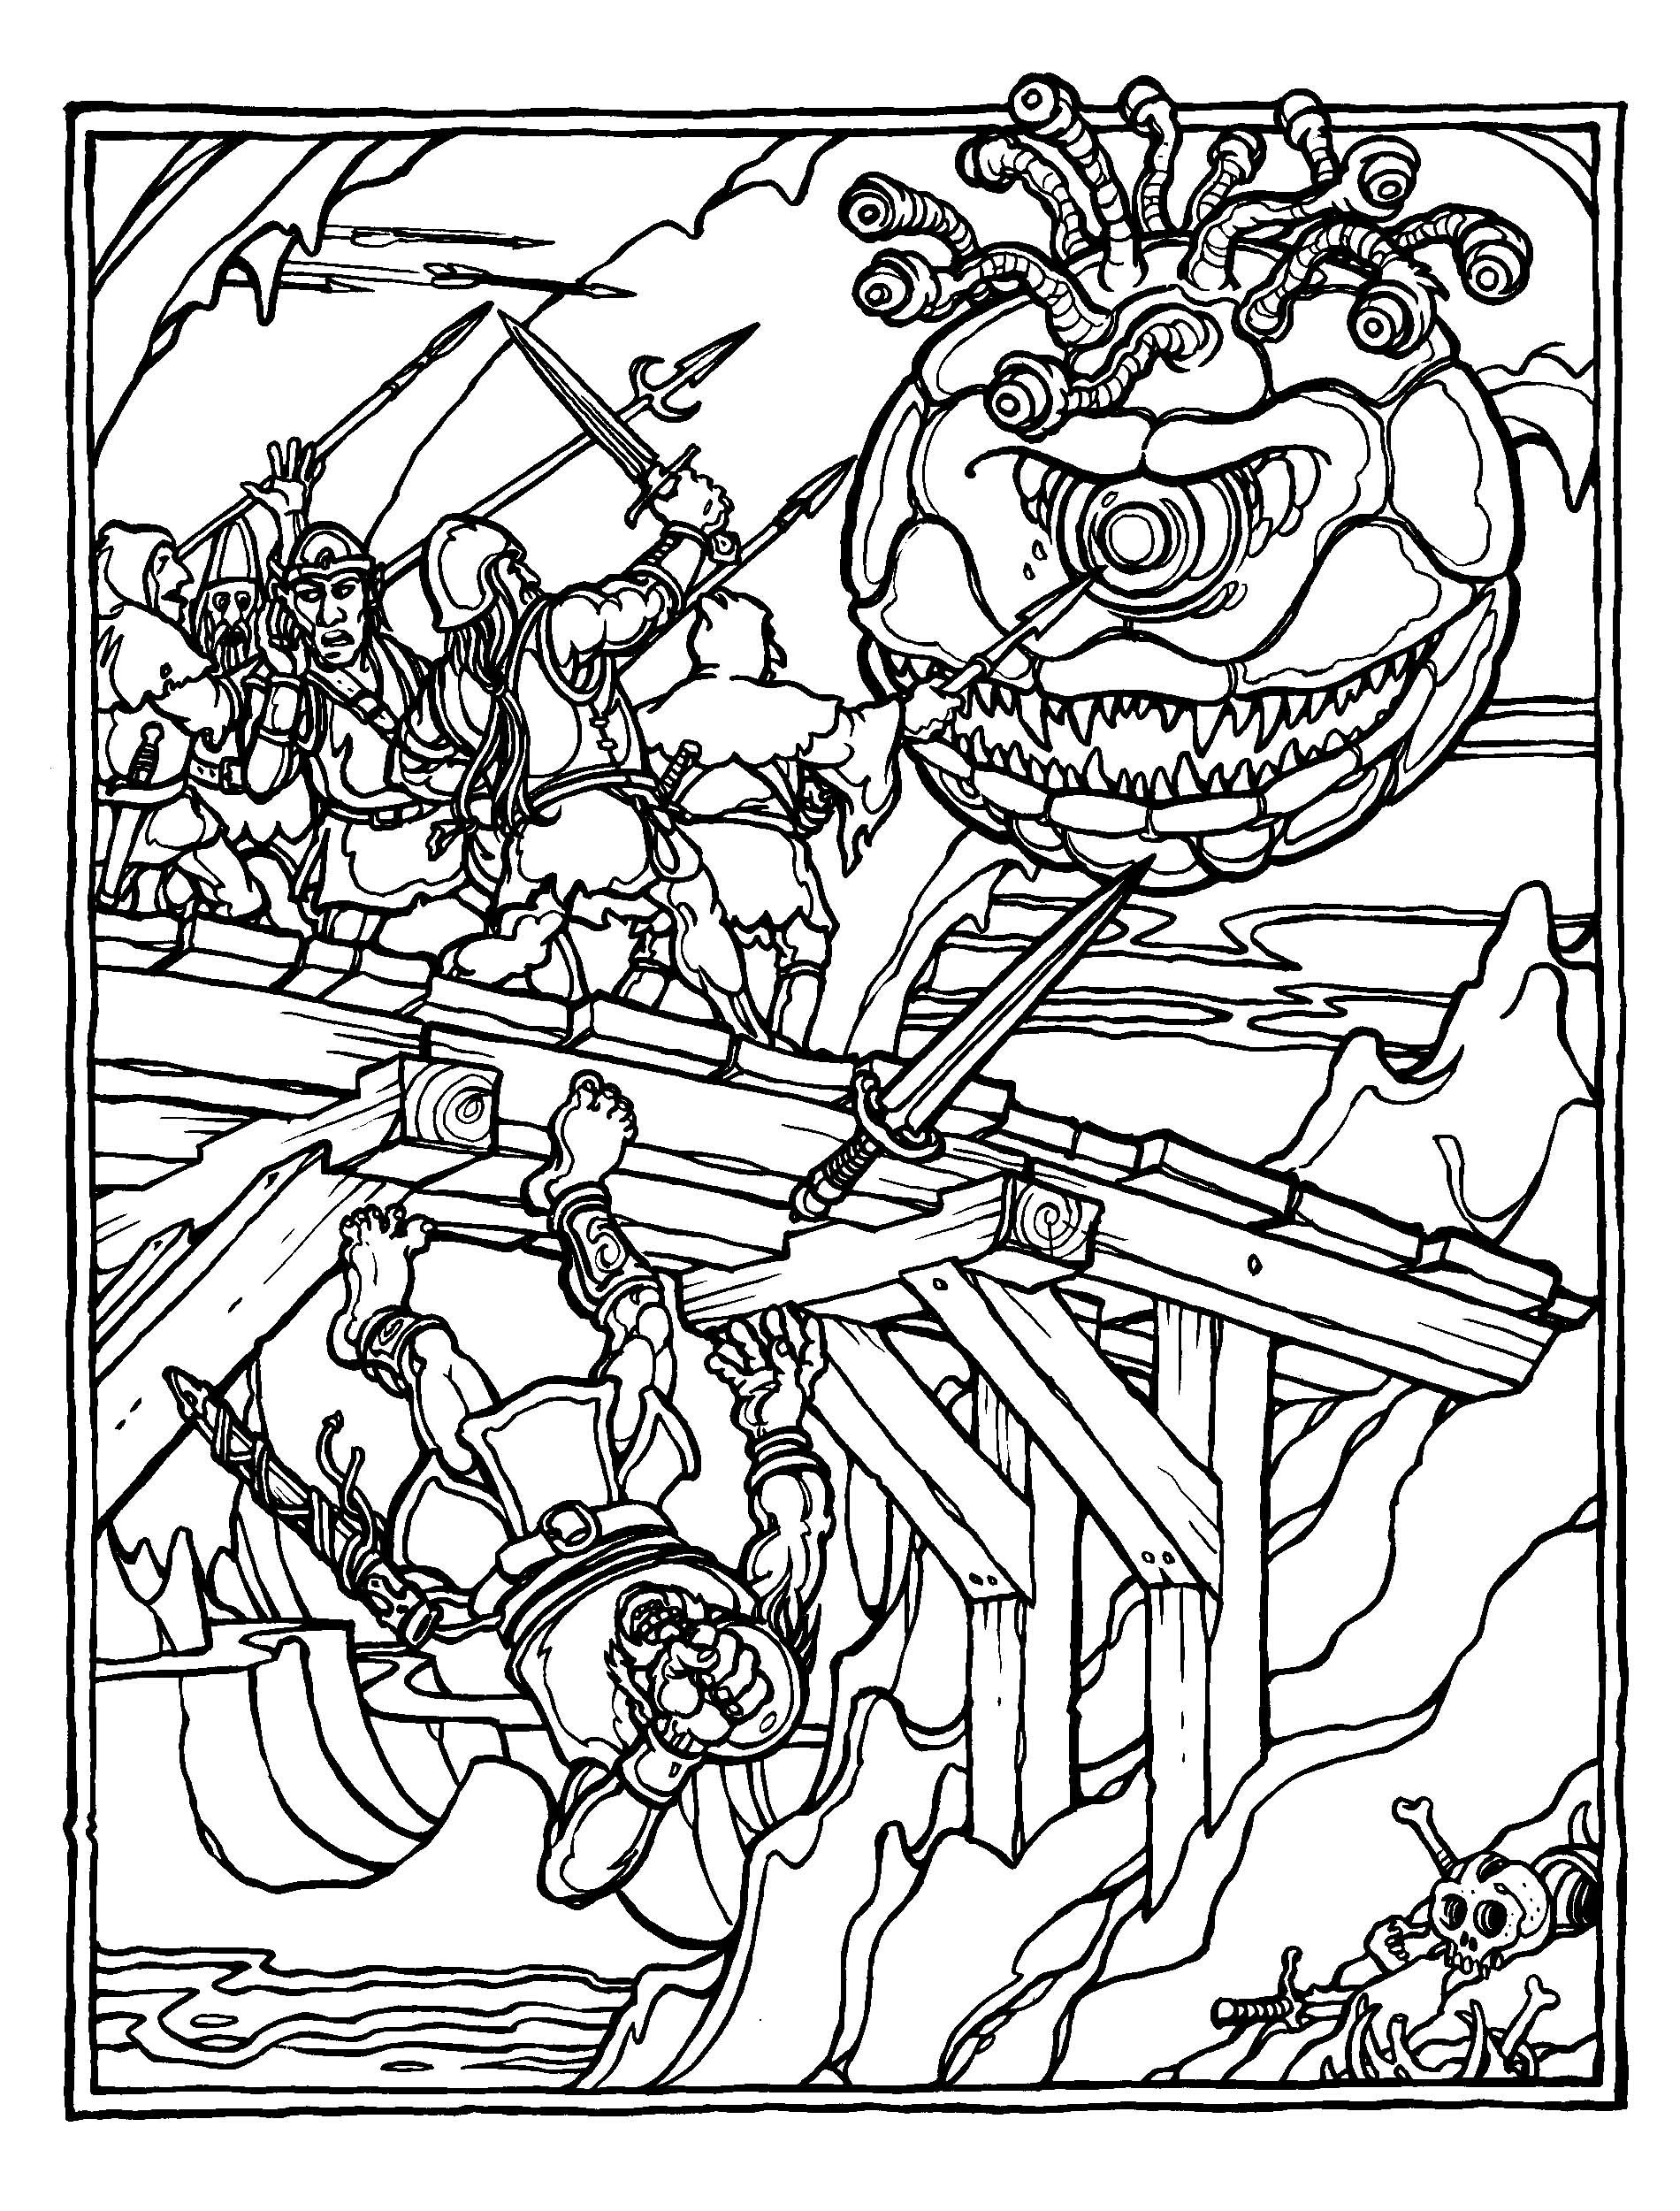 06cavern Jpg 1 900 2 500 Pixels Dungeons And Dragons Coloring Pages